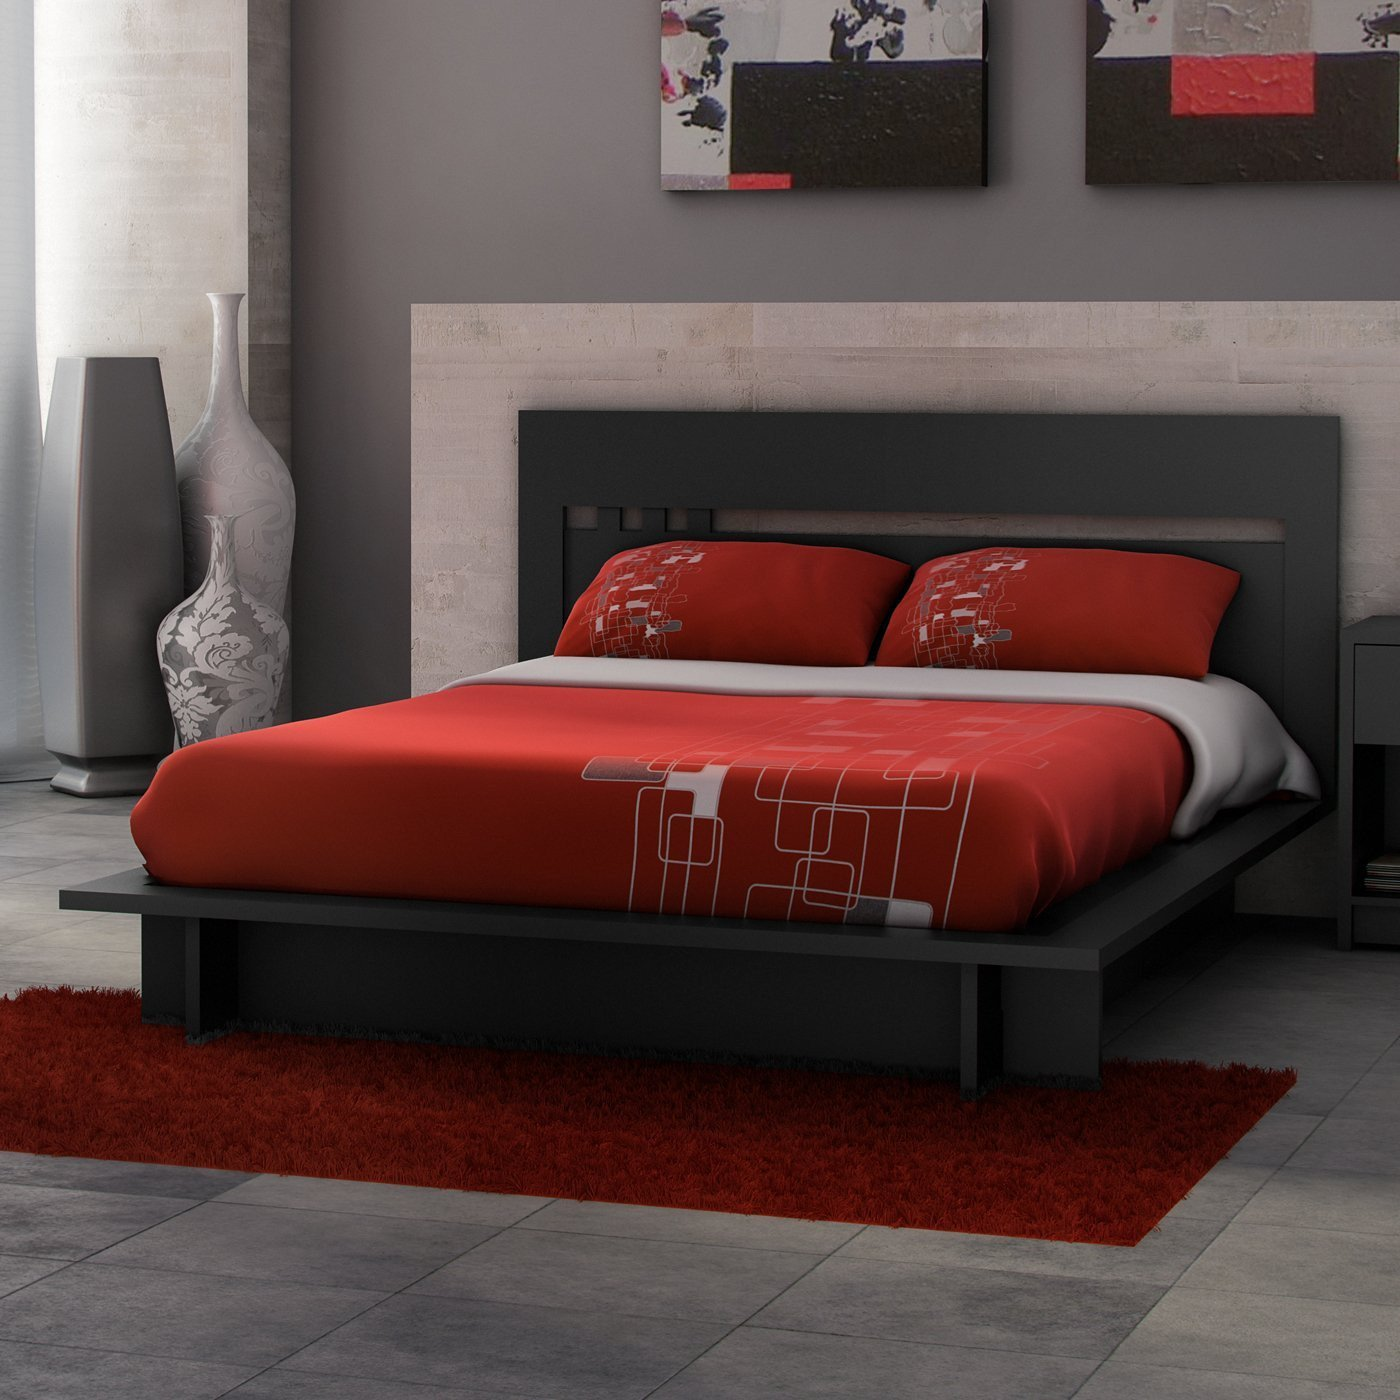 Red and Gray Bedroom Ideas Awesome Red Black and Gray Bedroom Ideas atmosphere Tattoos Hoo S